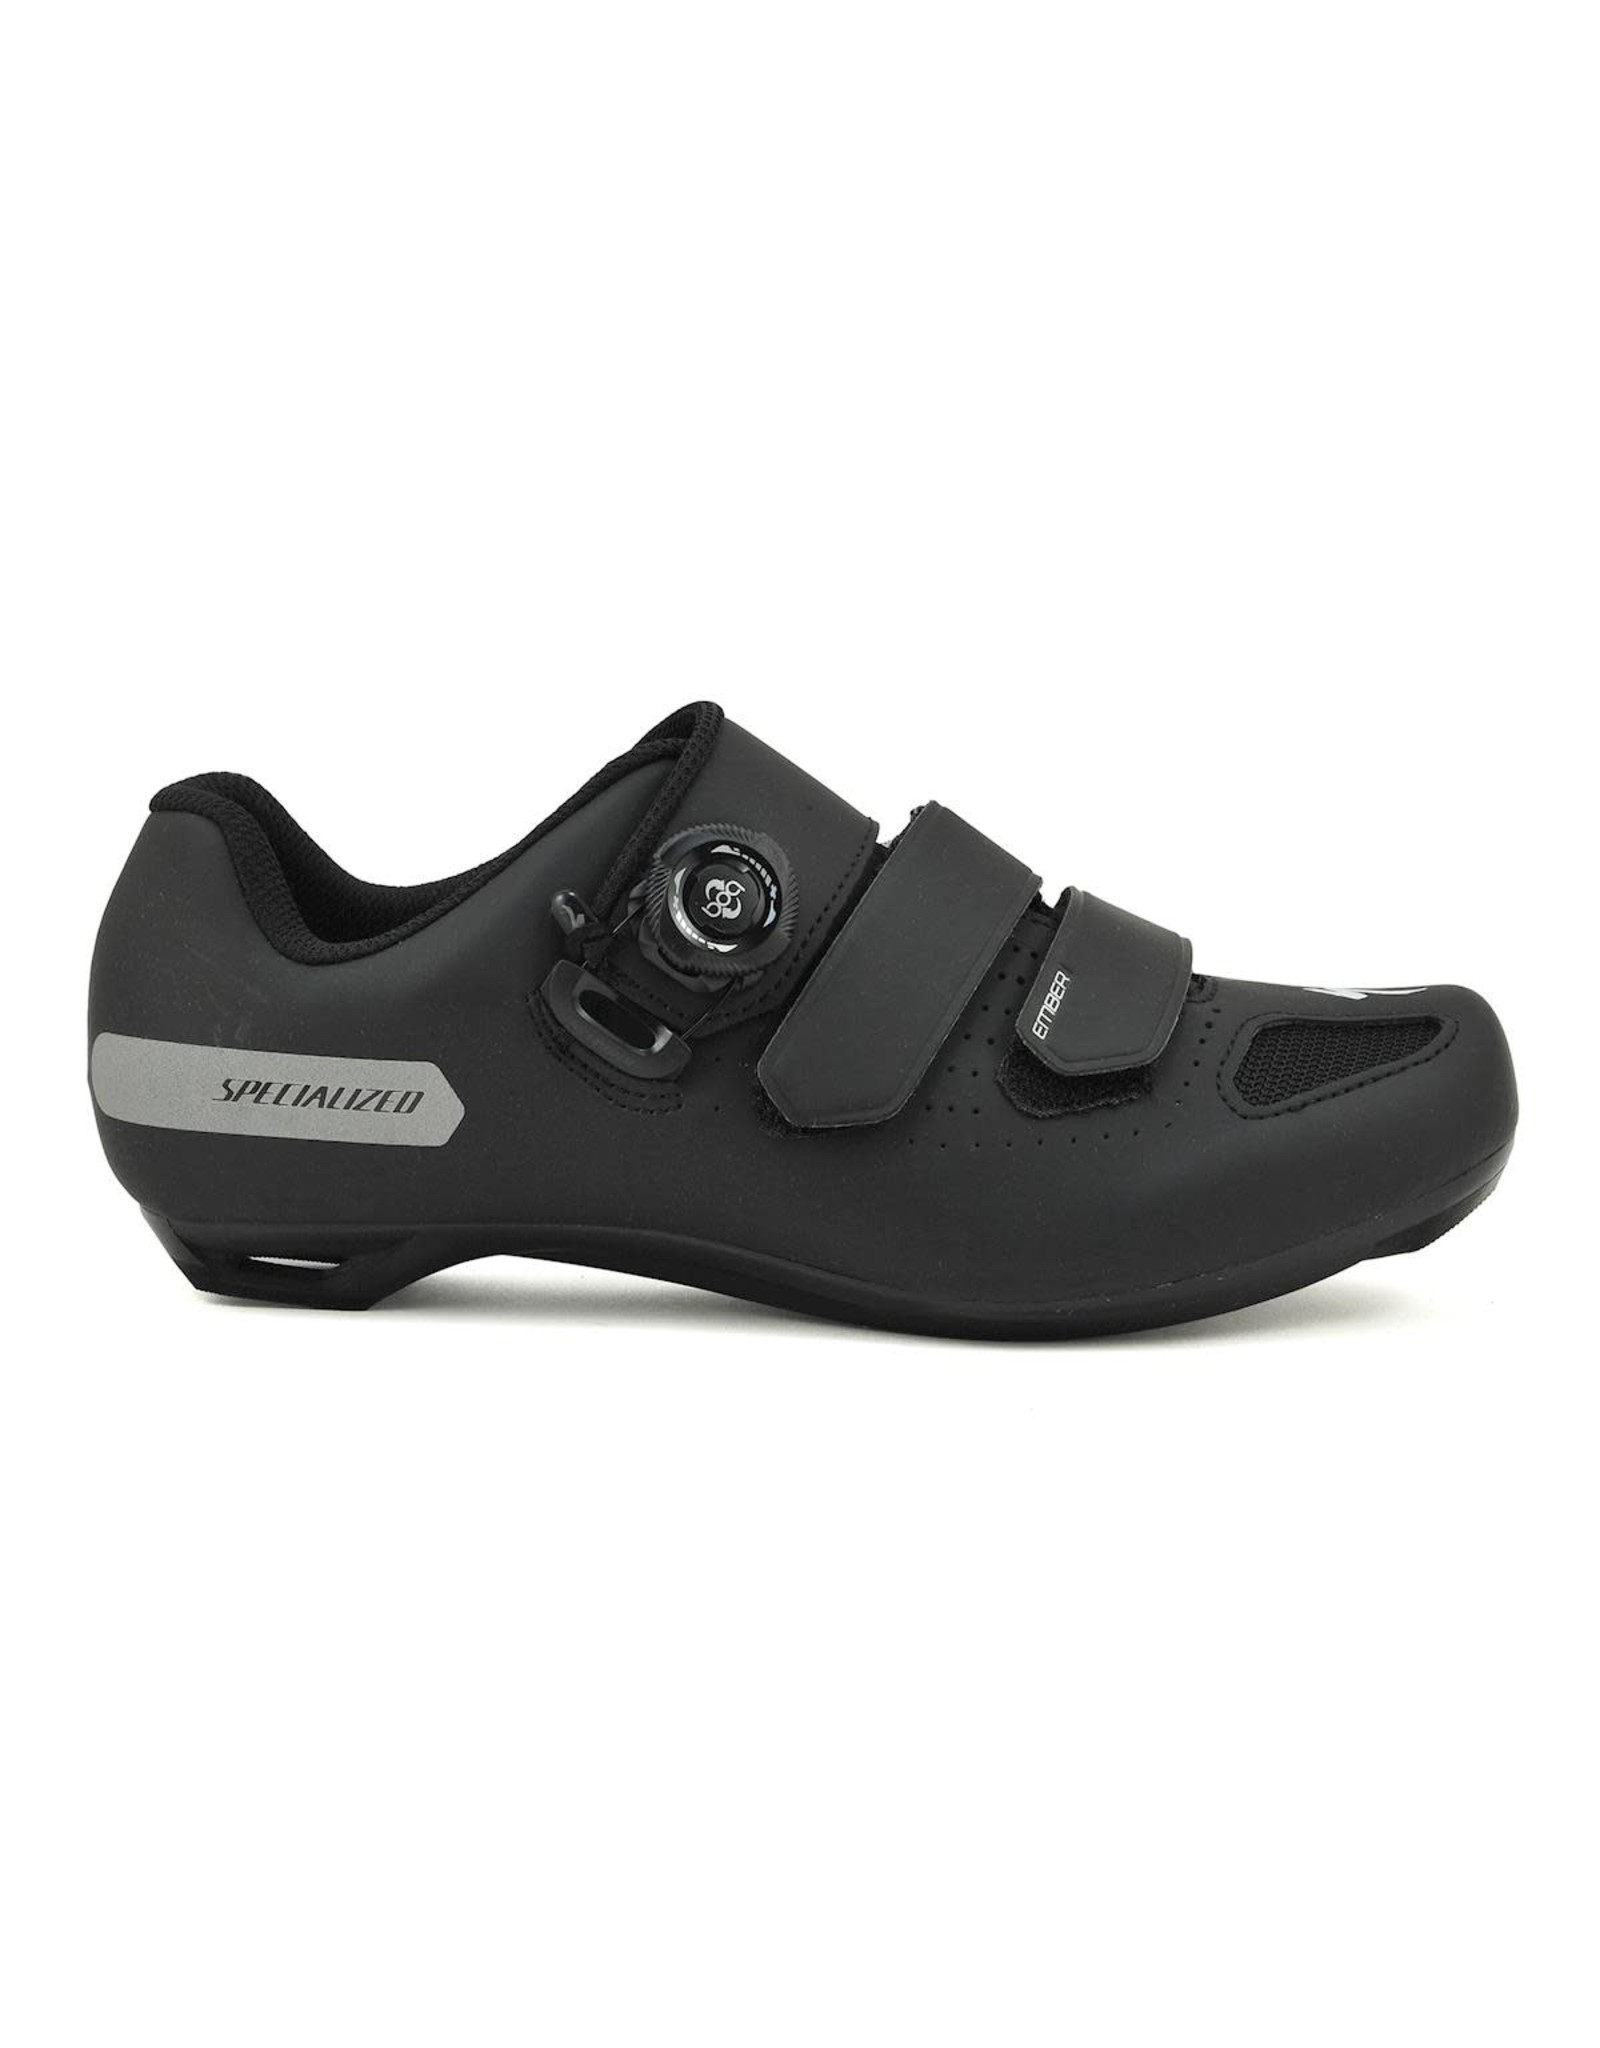 Specialized Shoe Spec Ember RD 42/10.5 Blk/Sil